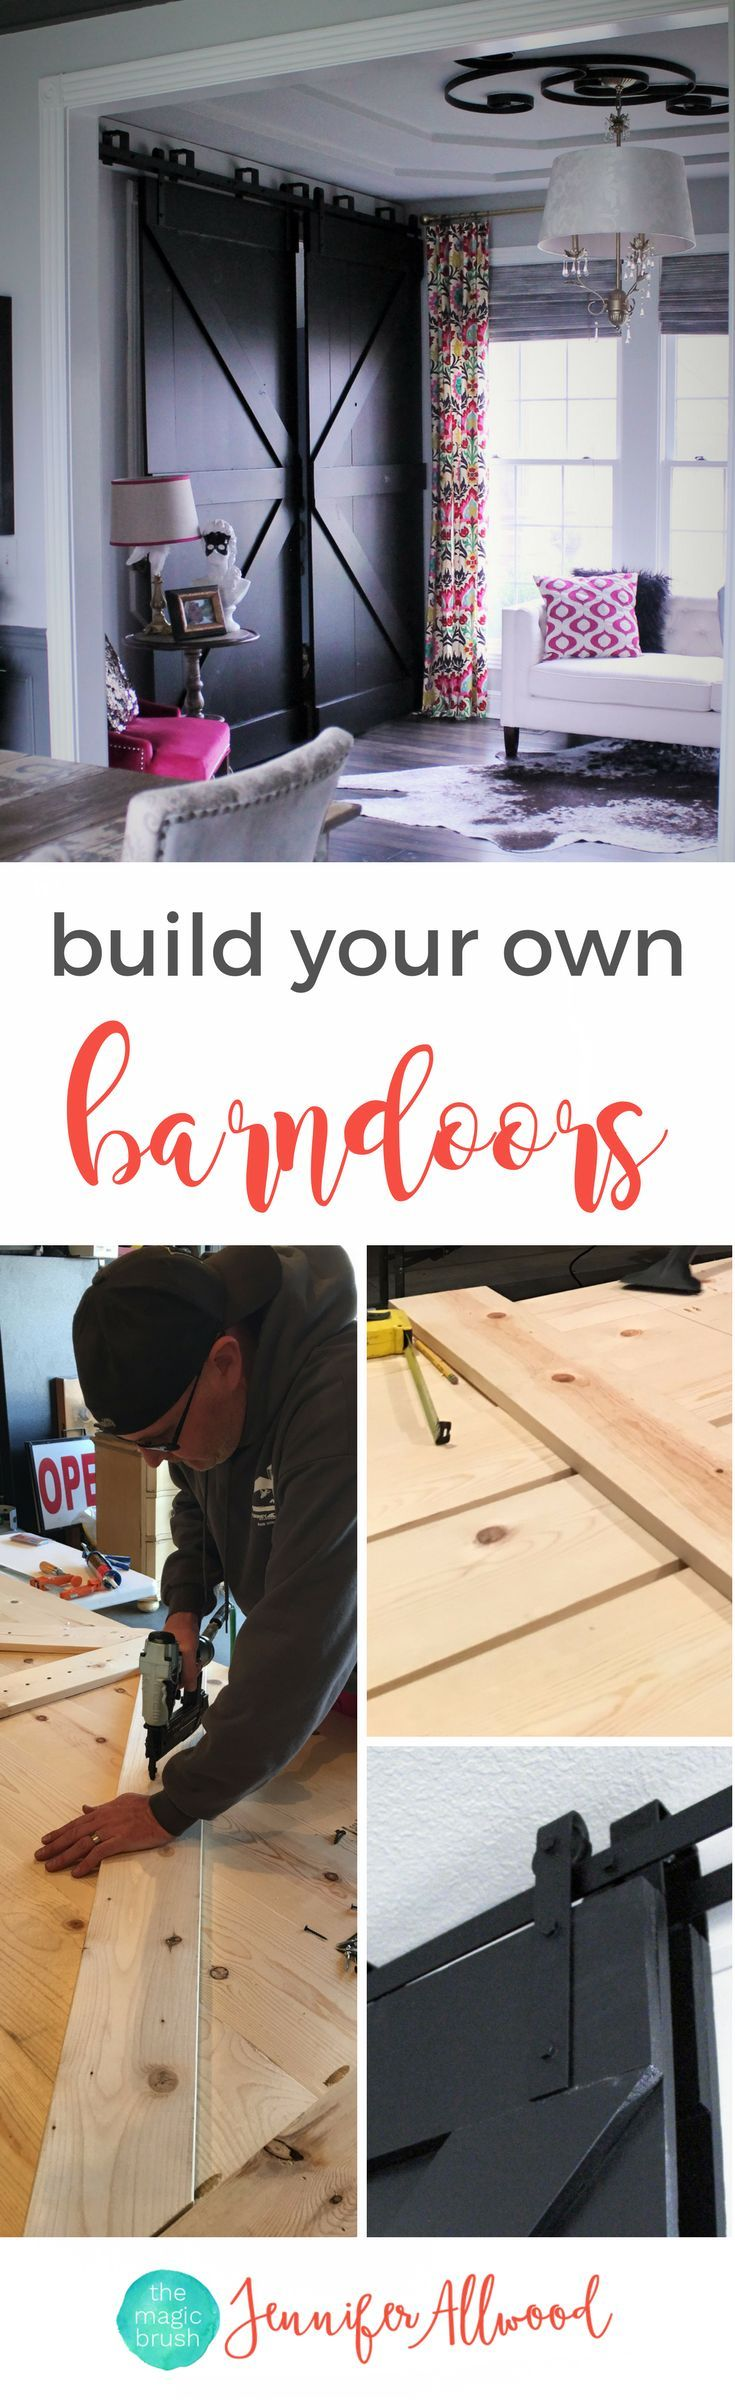 Info's : Free Tutorial: build your own black bypass barndoors using whitewood | DIY Farmhouse barndoors | Home Office Idea by themagicbrushinc.com | Black Barndoors and painted barndoors